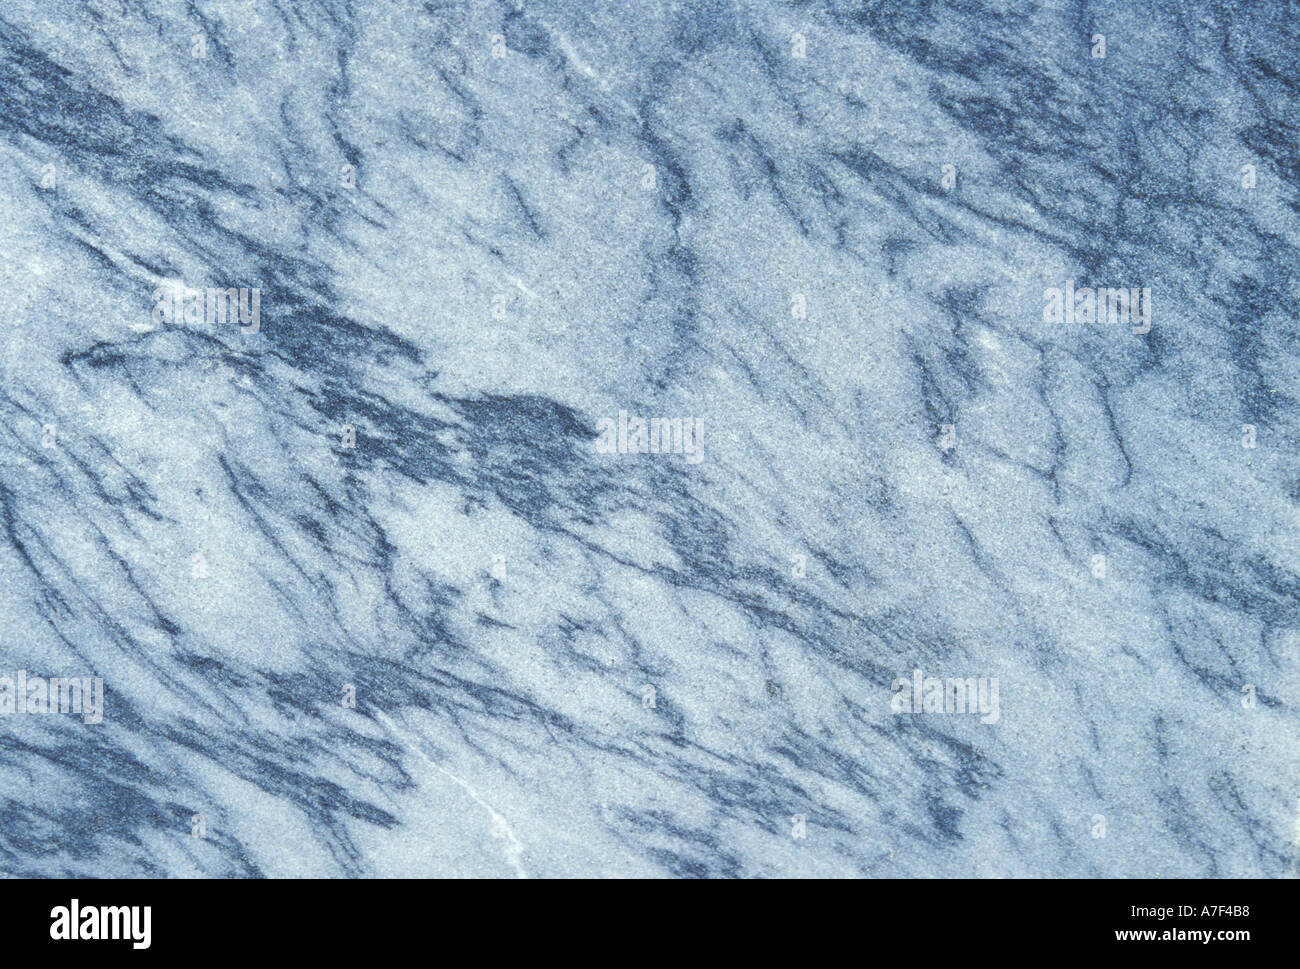 Dark Blue Marble : Smooth bluish marble like surface with dark blue veins